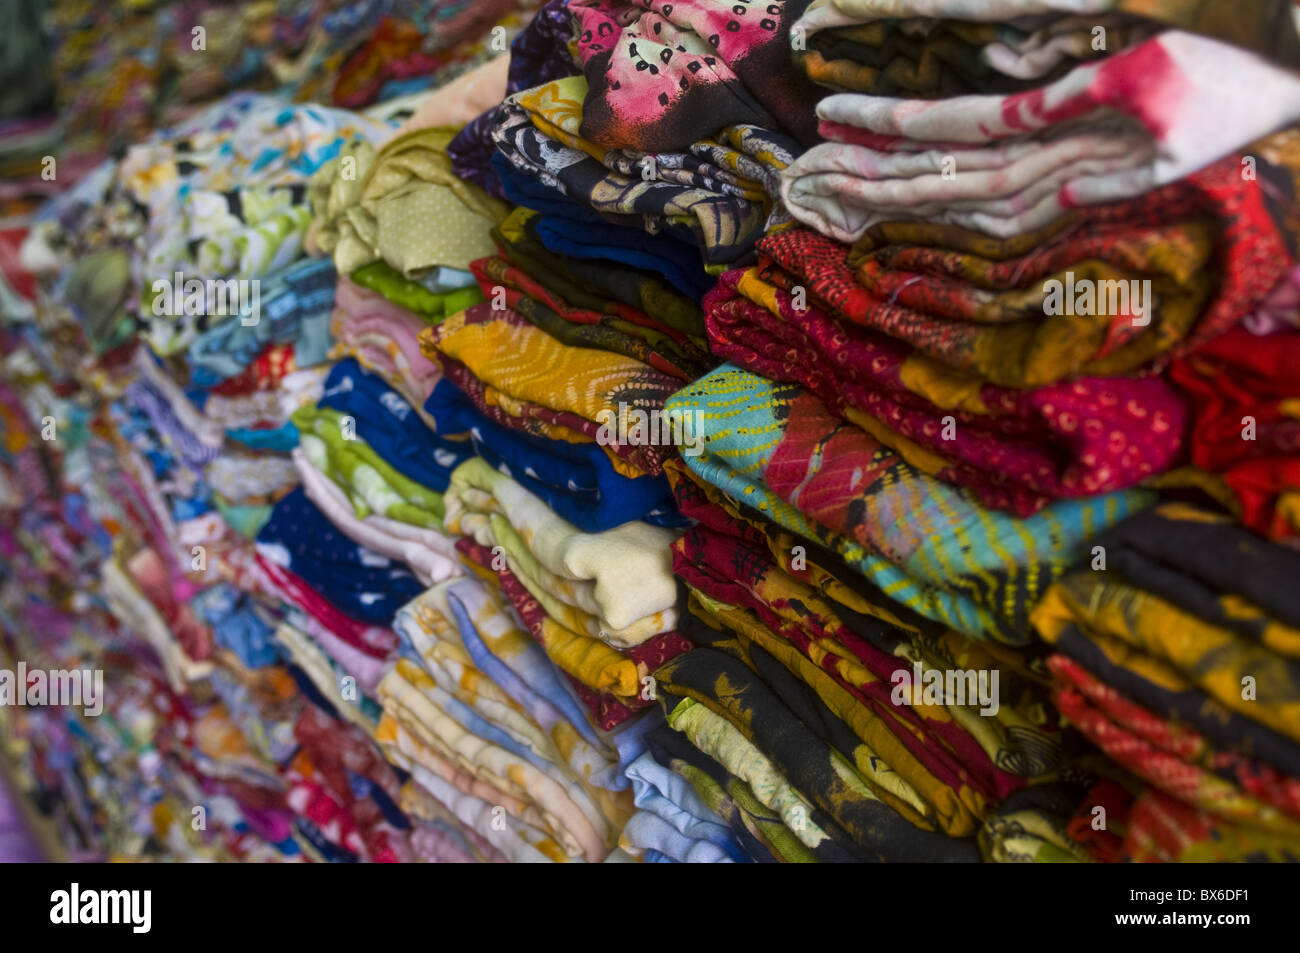 Colourful clothes for sale, Nouakchott, Mauritania, Africa - Stock Image